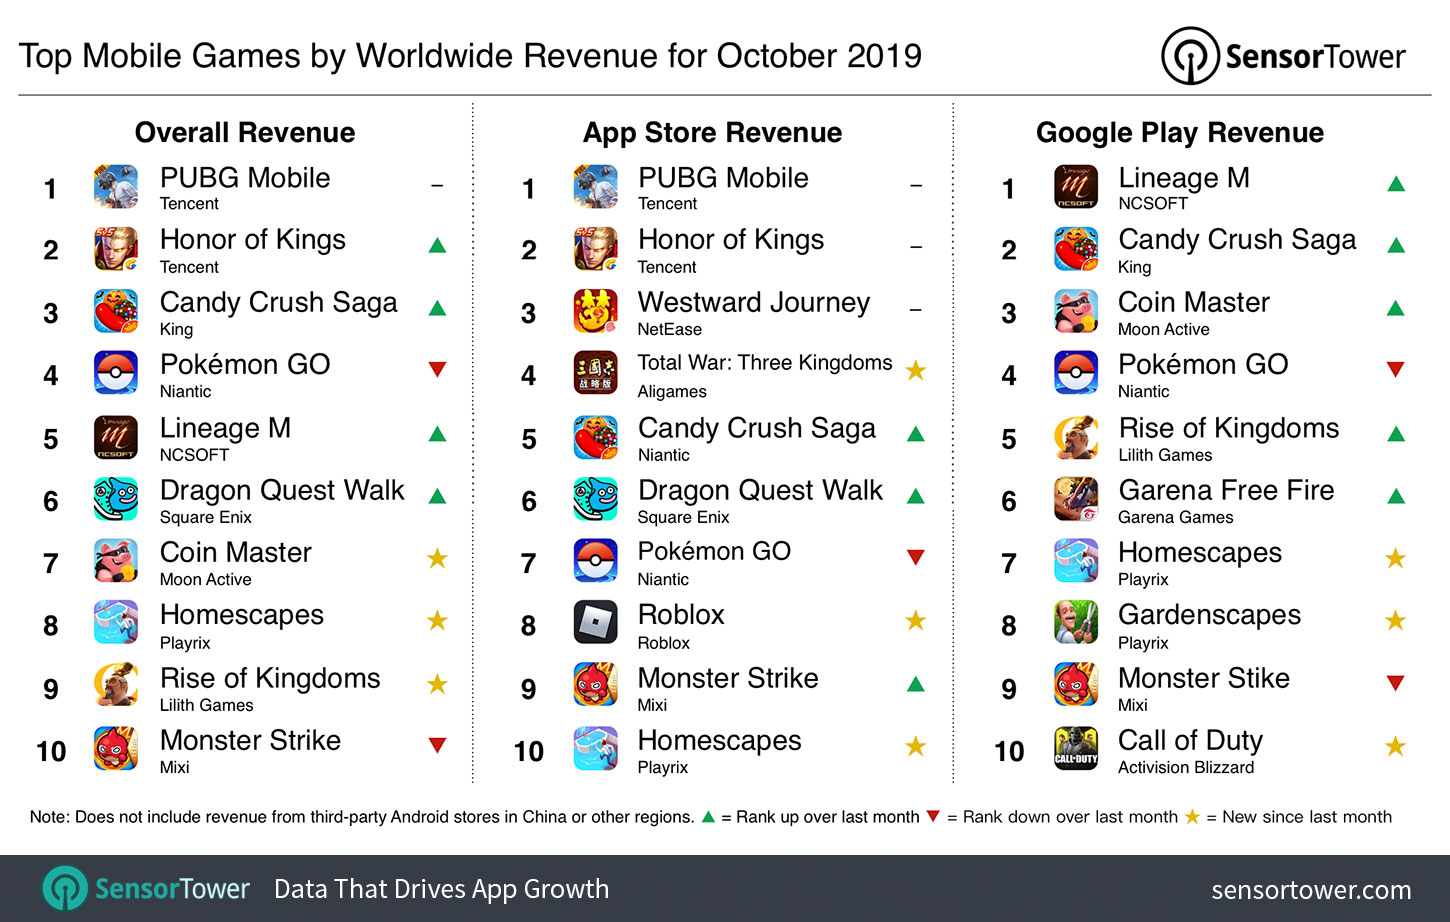 top-mobile-games-worldwide-revenue-october-2019.jpg